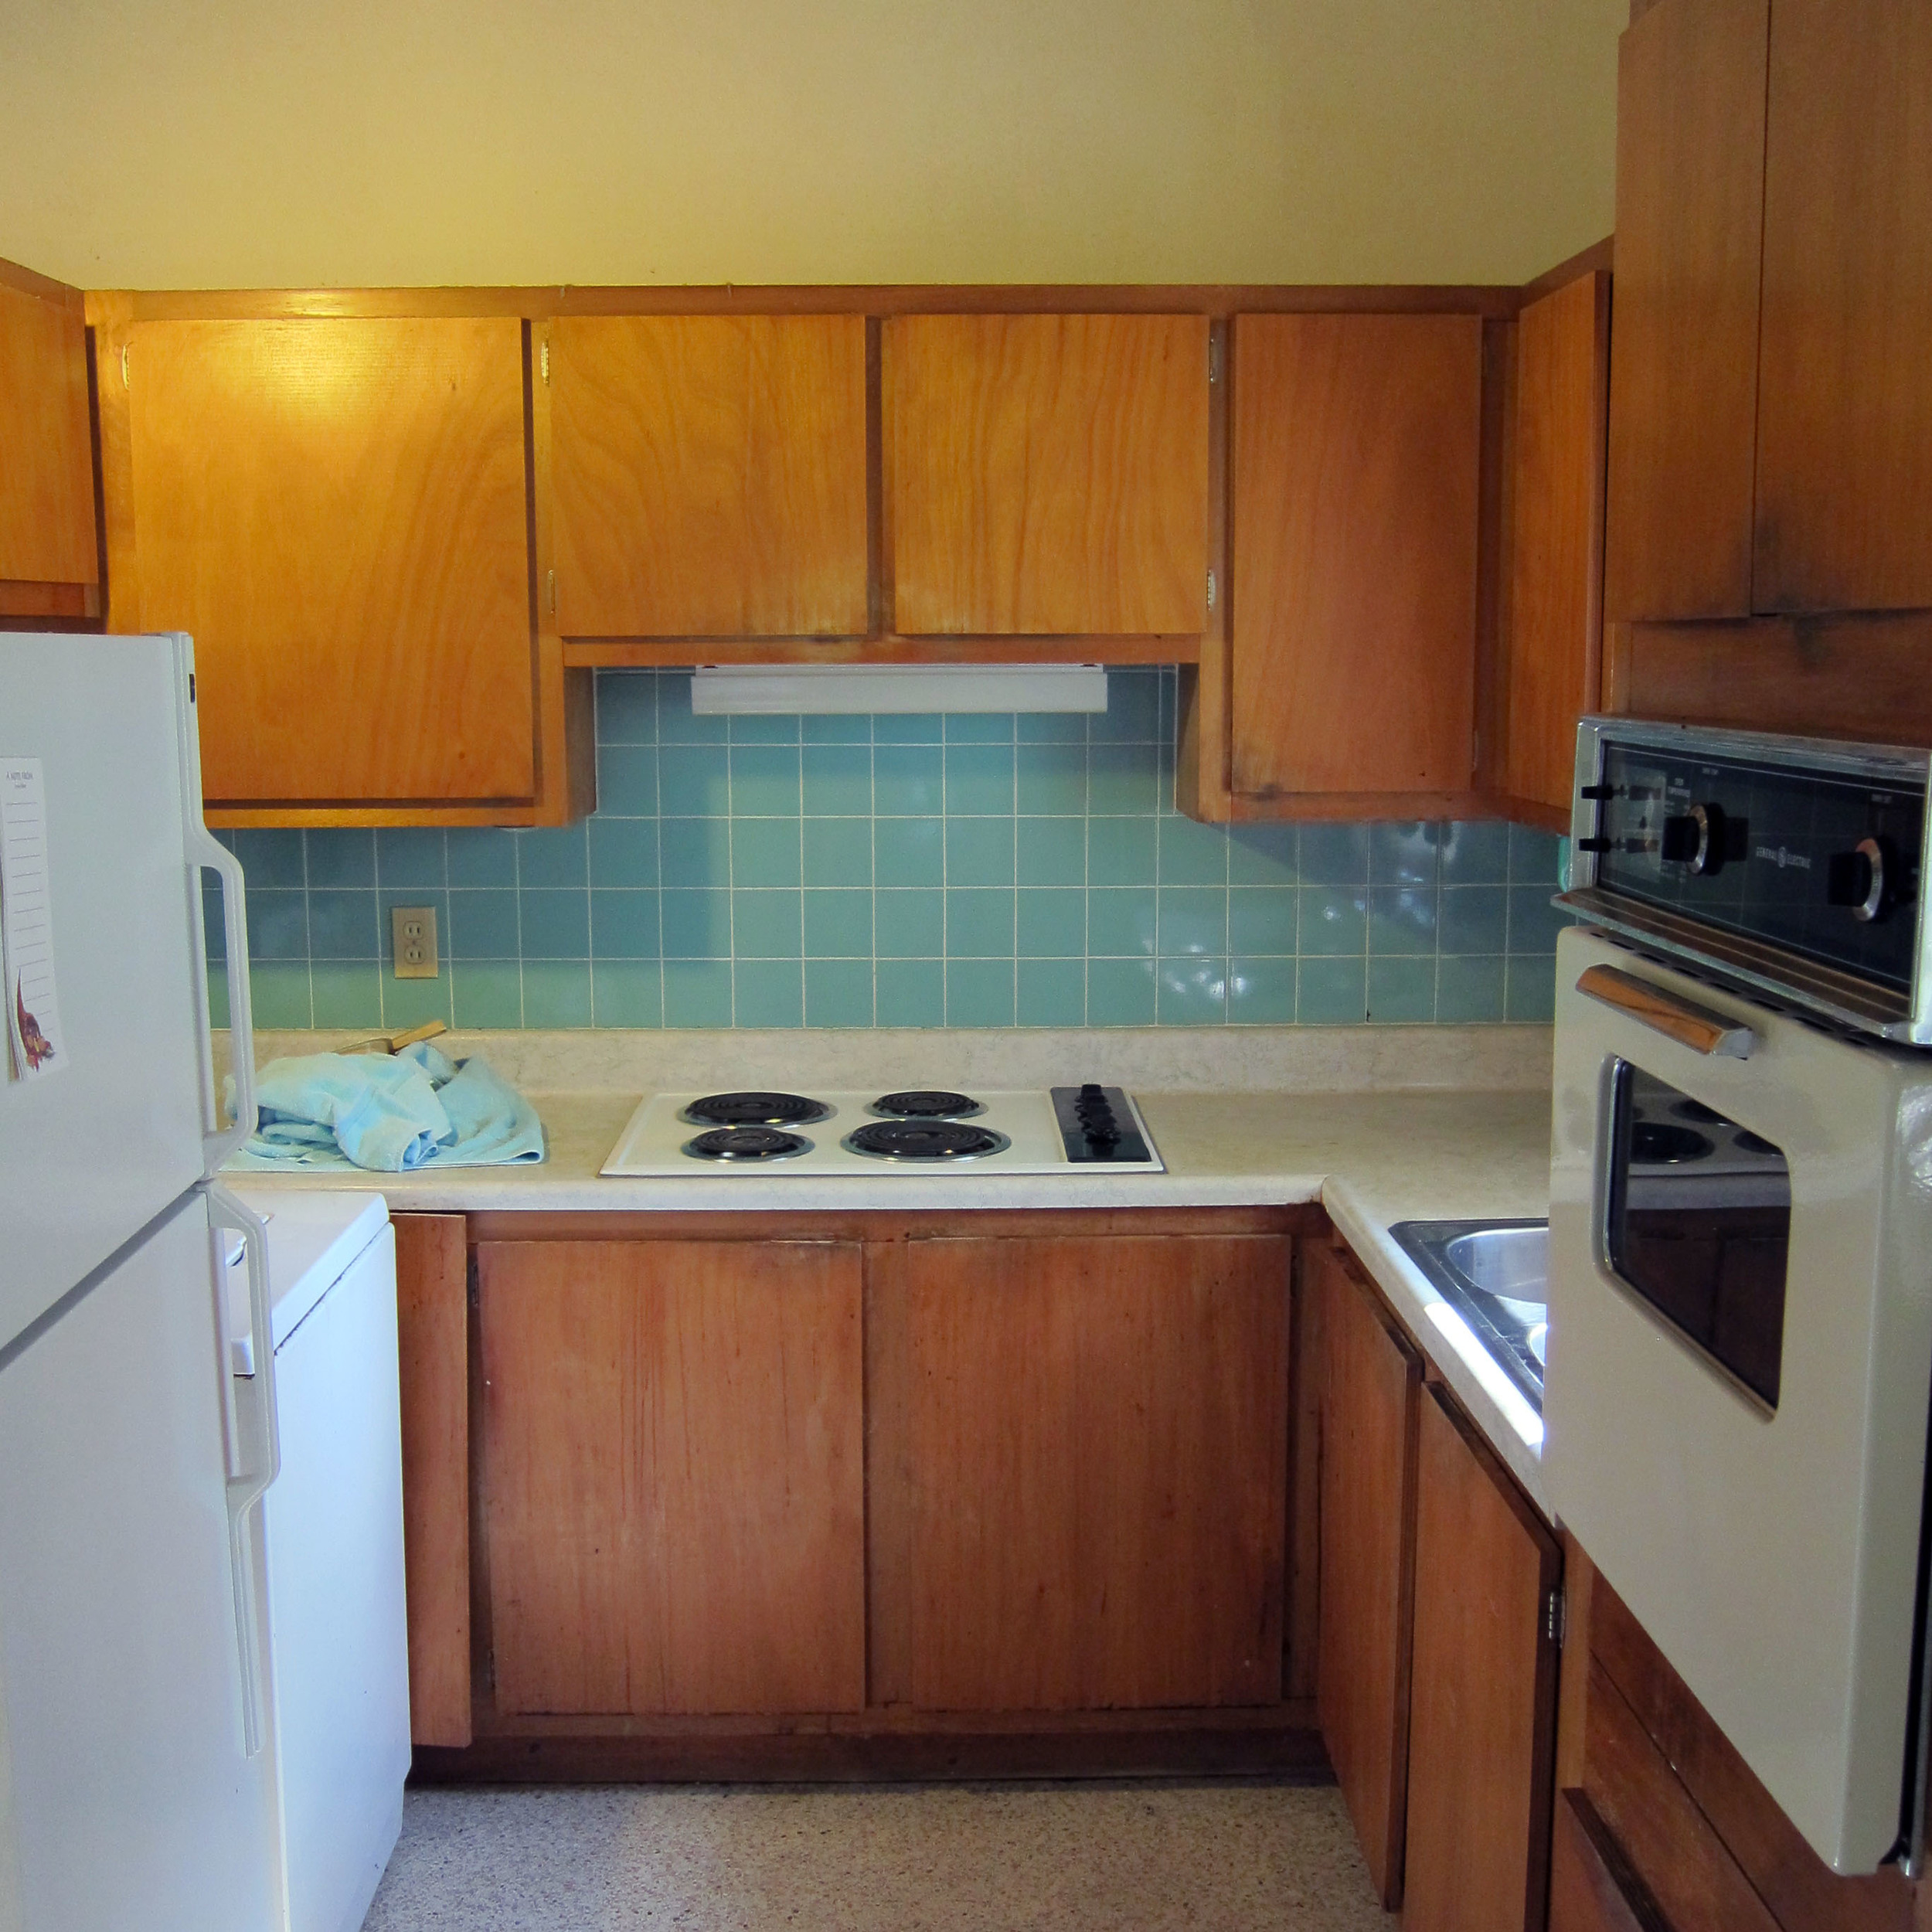 3 kitchen before.jpg